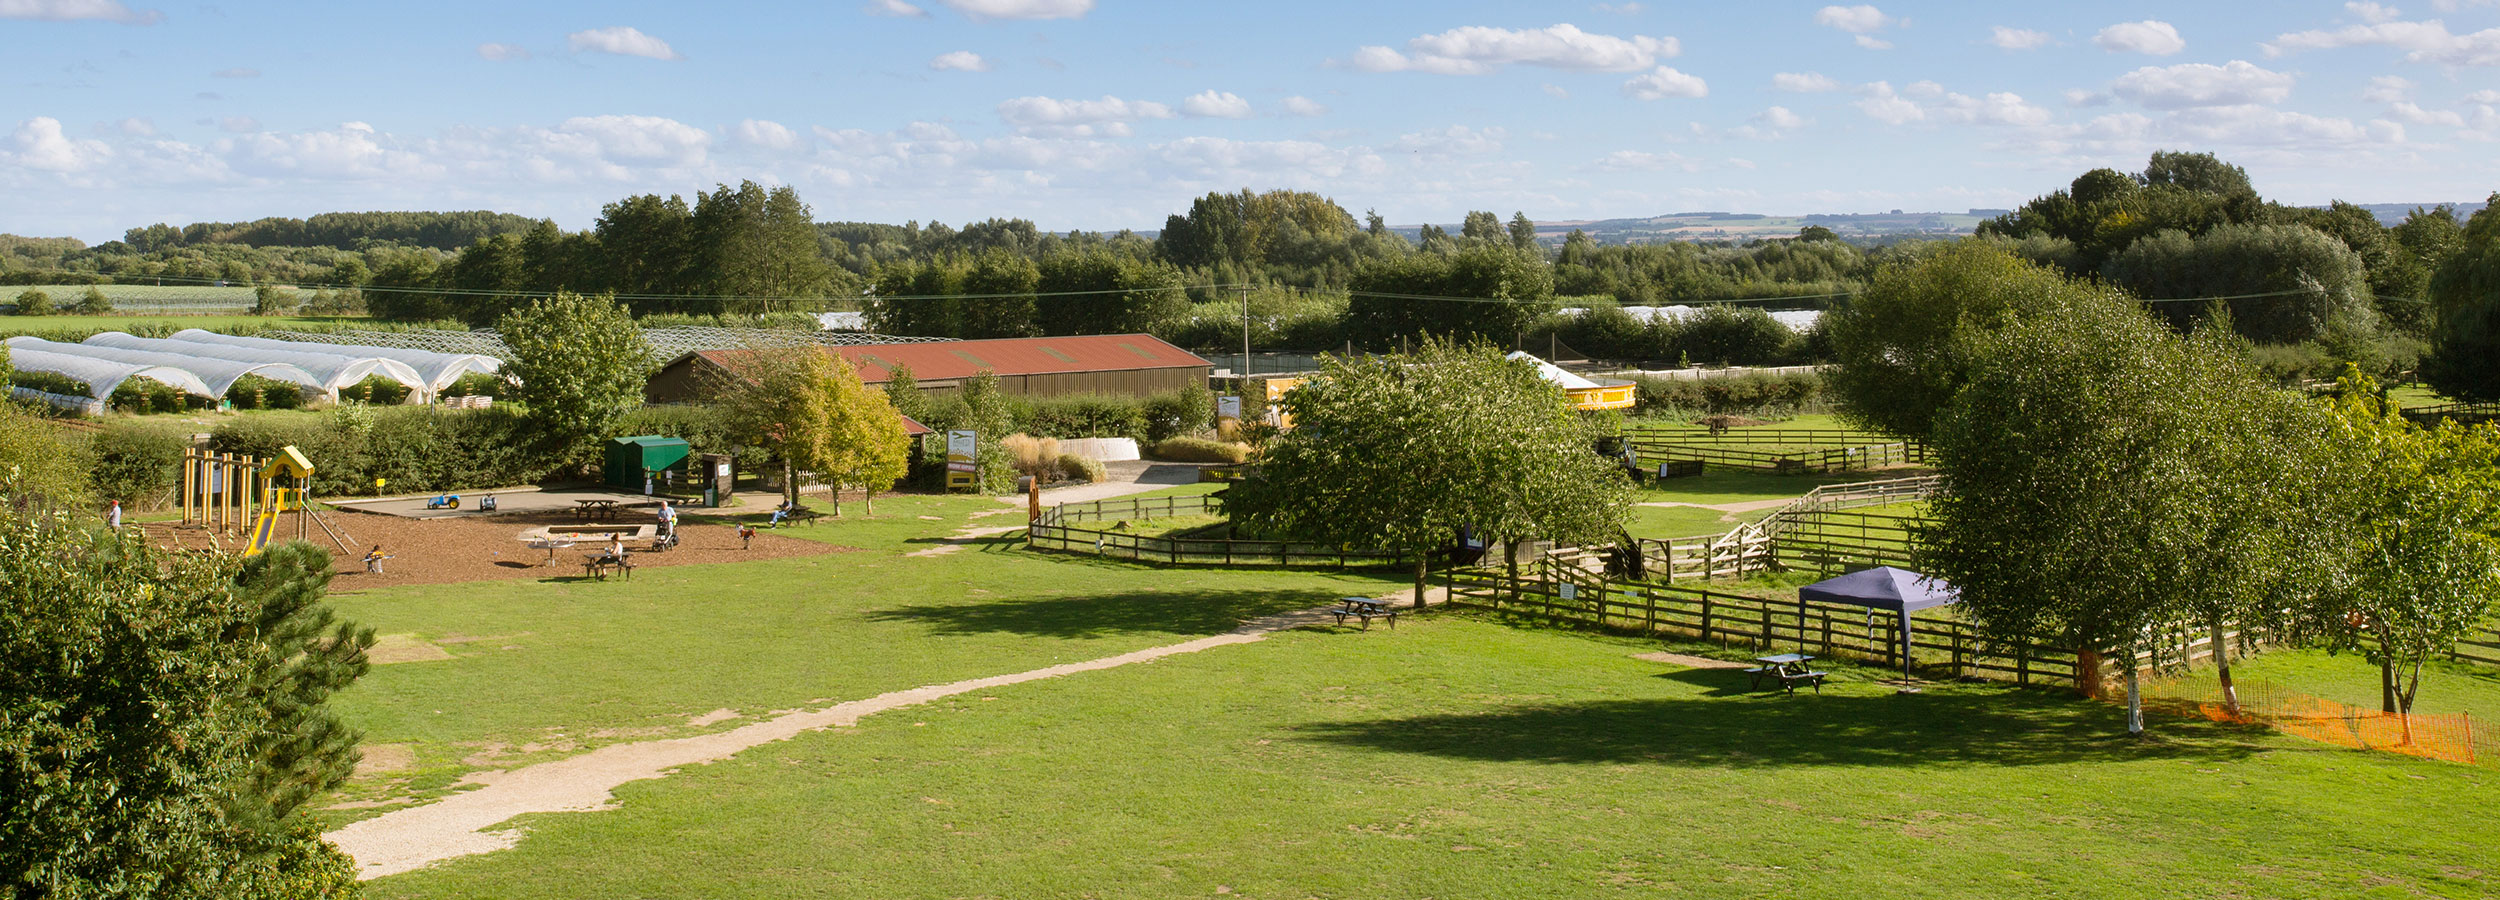 millets farm opening hours